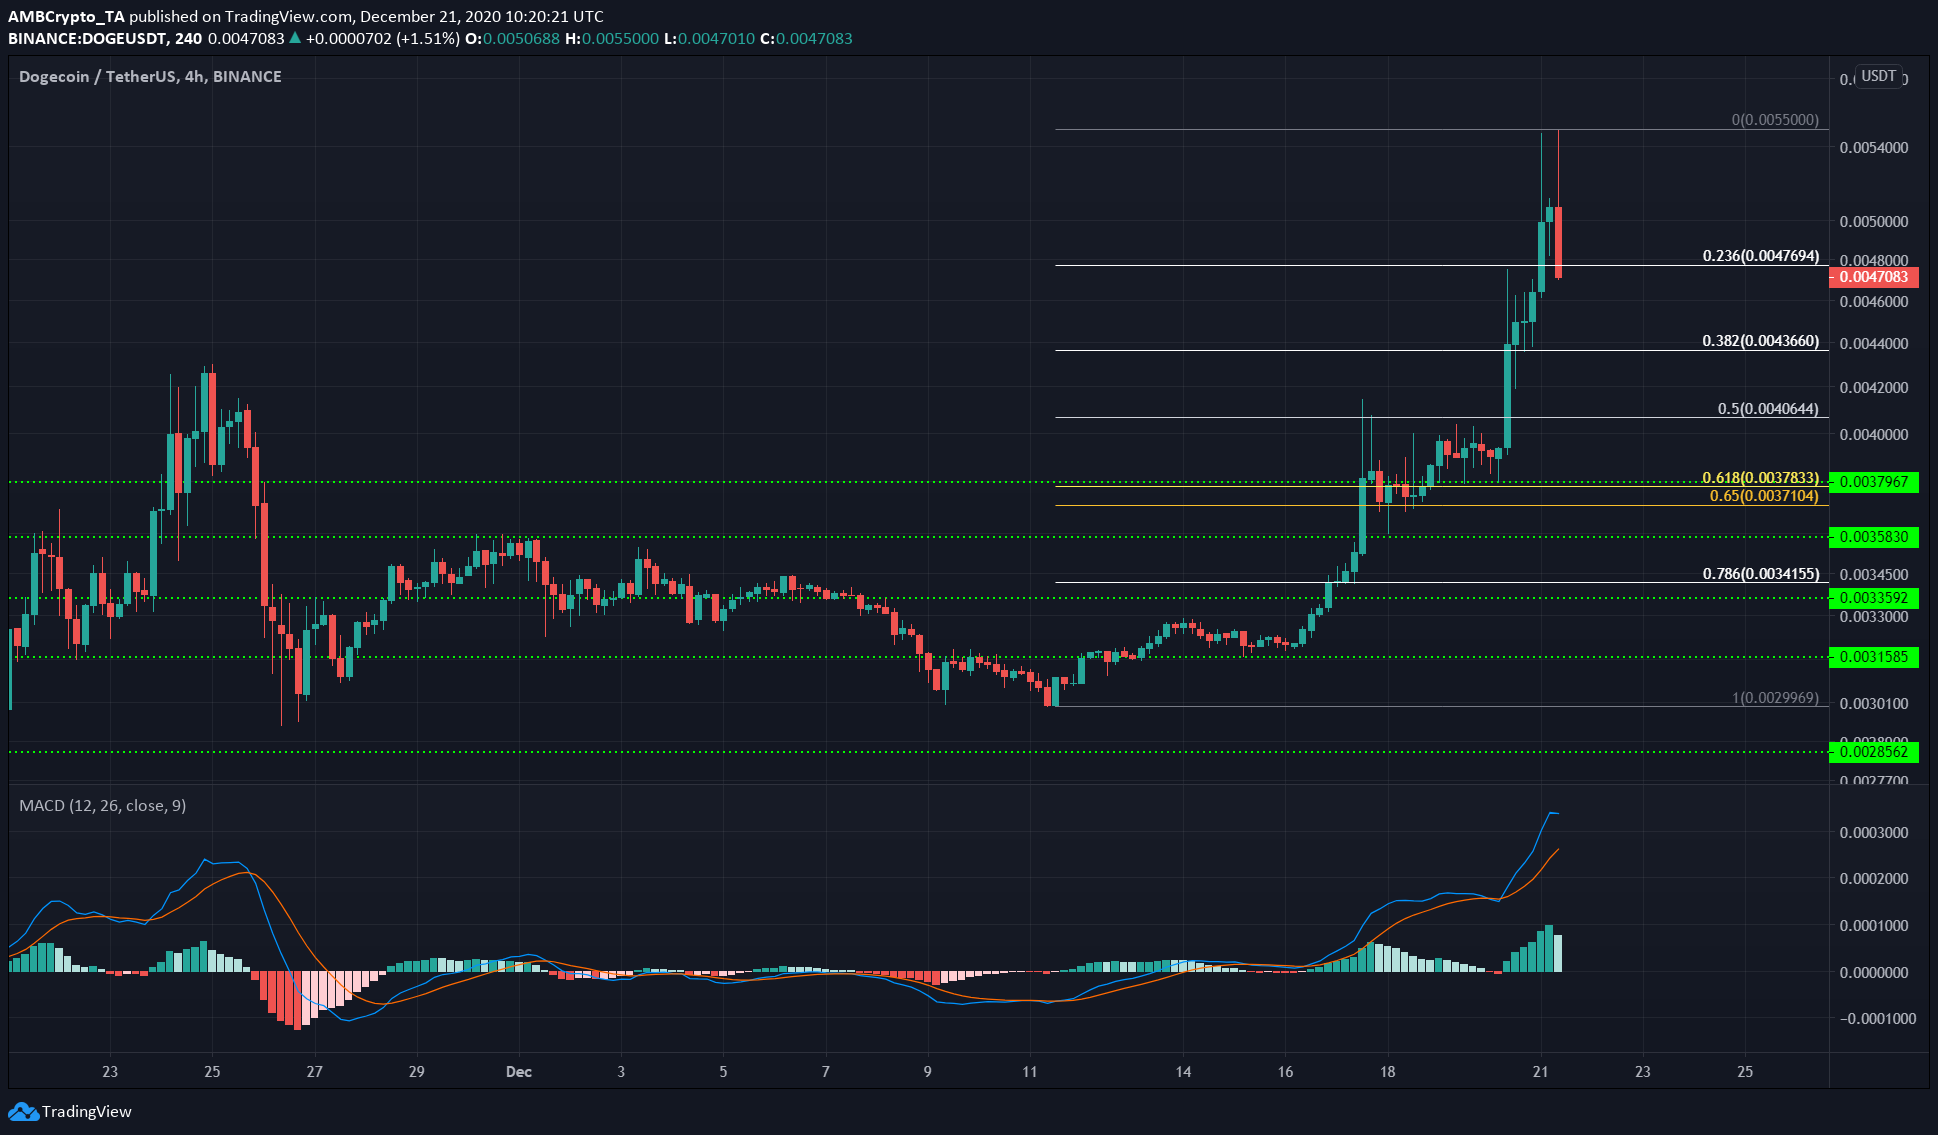 XRP, IOTA, Dogecoin Price Analysis: December 21